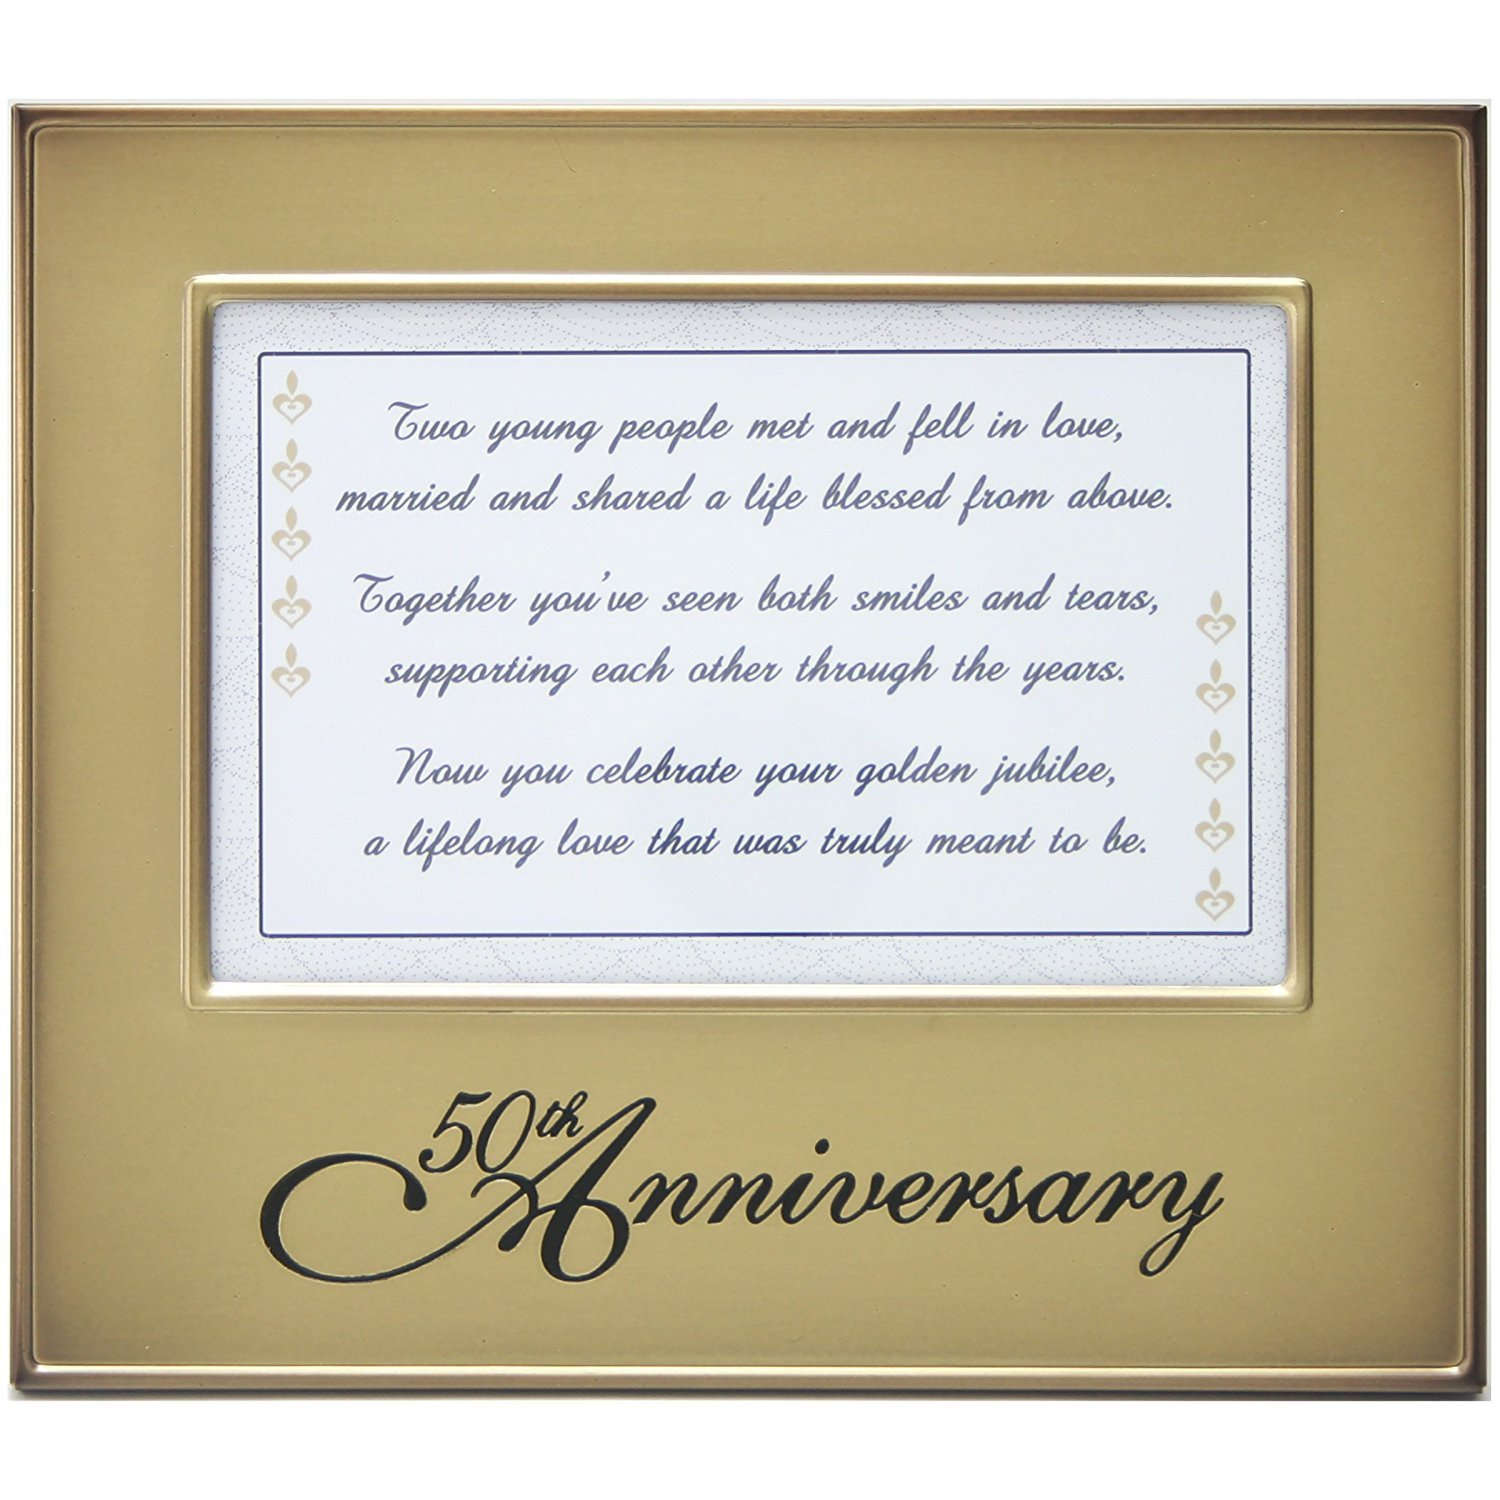 Amazoncom Jubilee Celebrations 50th Anniversary Frame With Toast